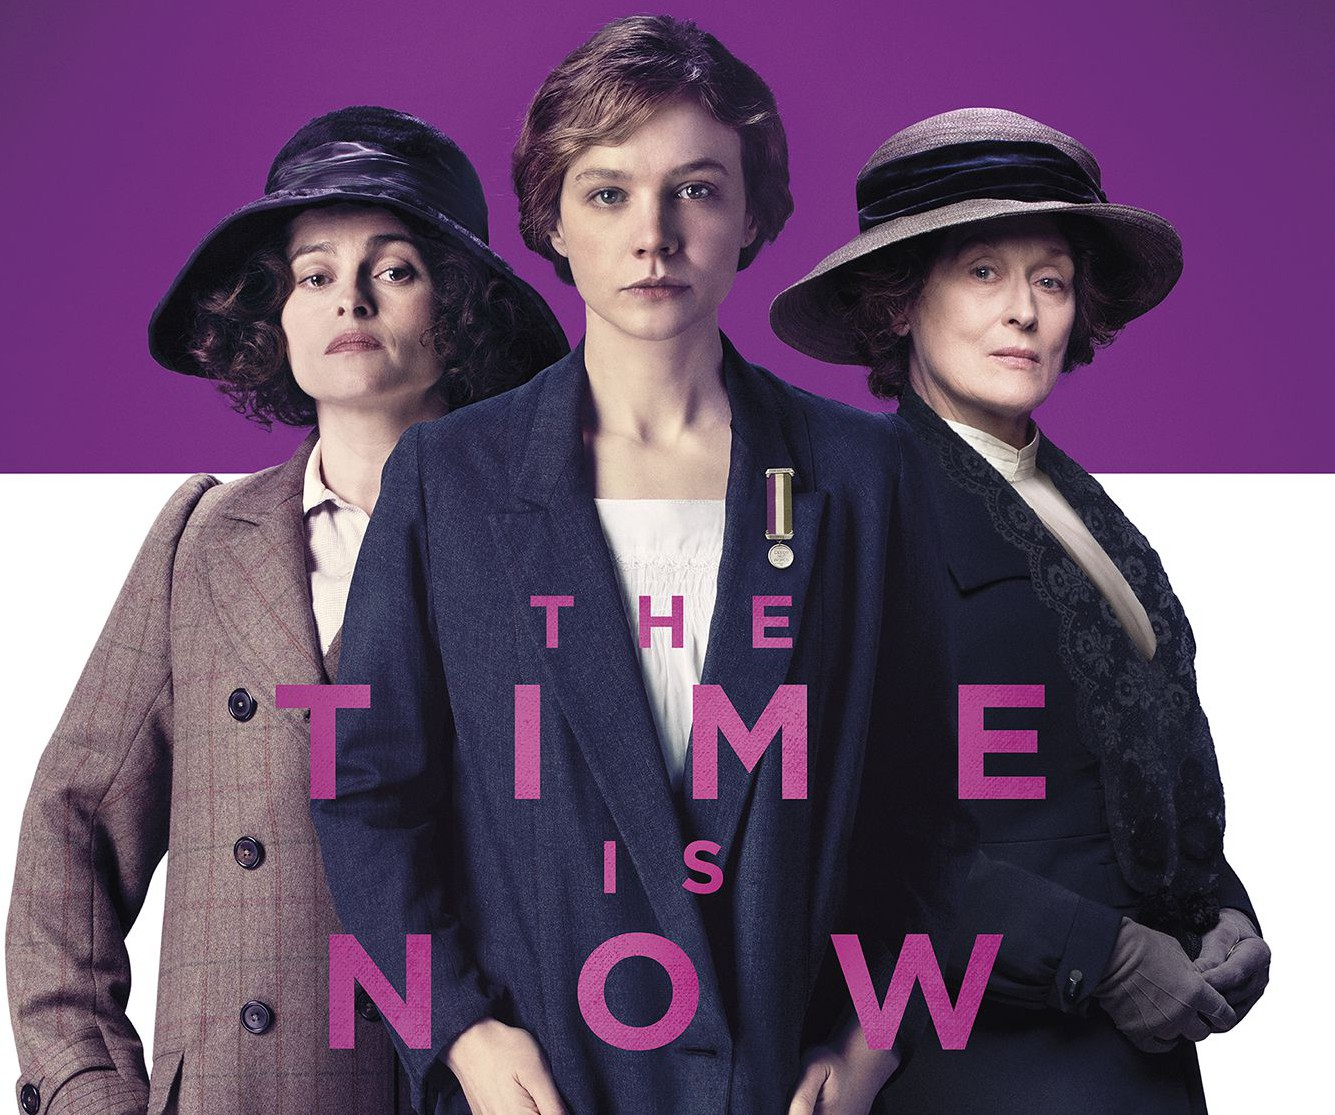 7 reasons why you should be excited about the Suffragette movie